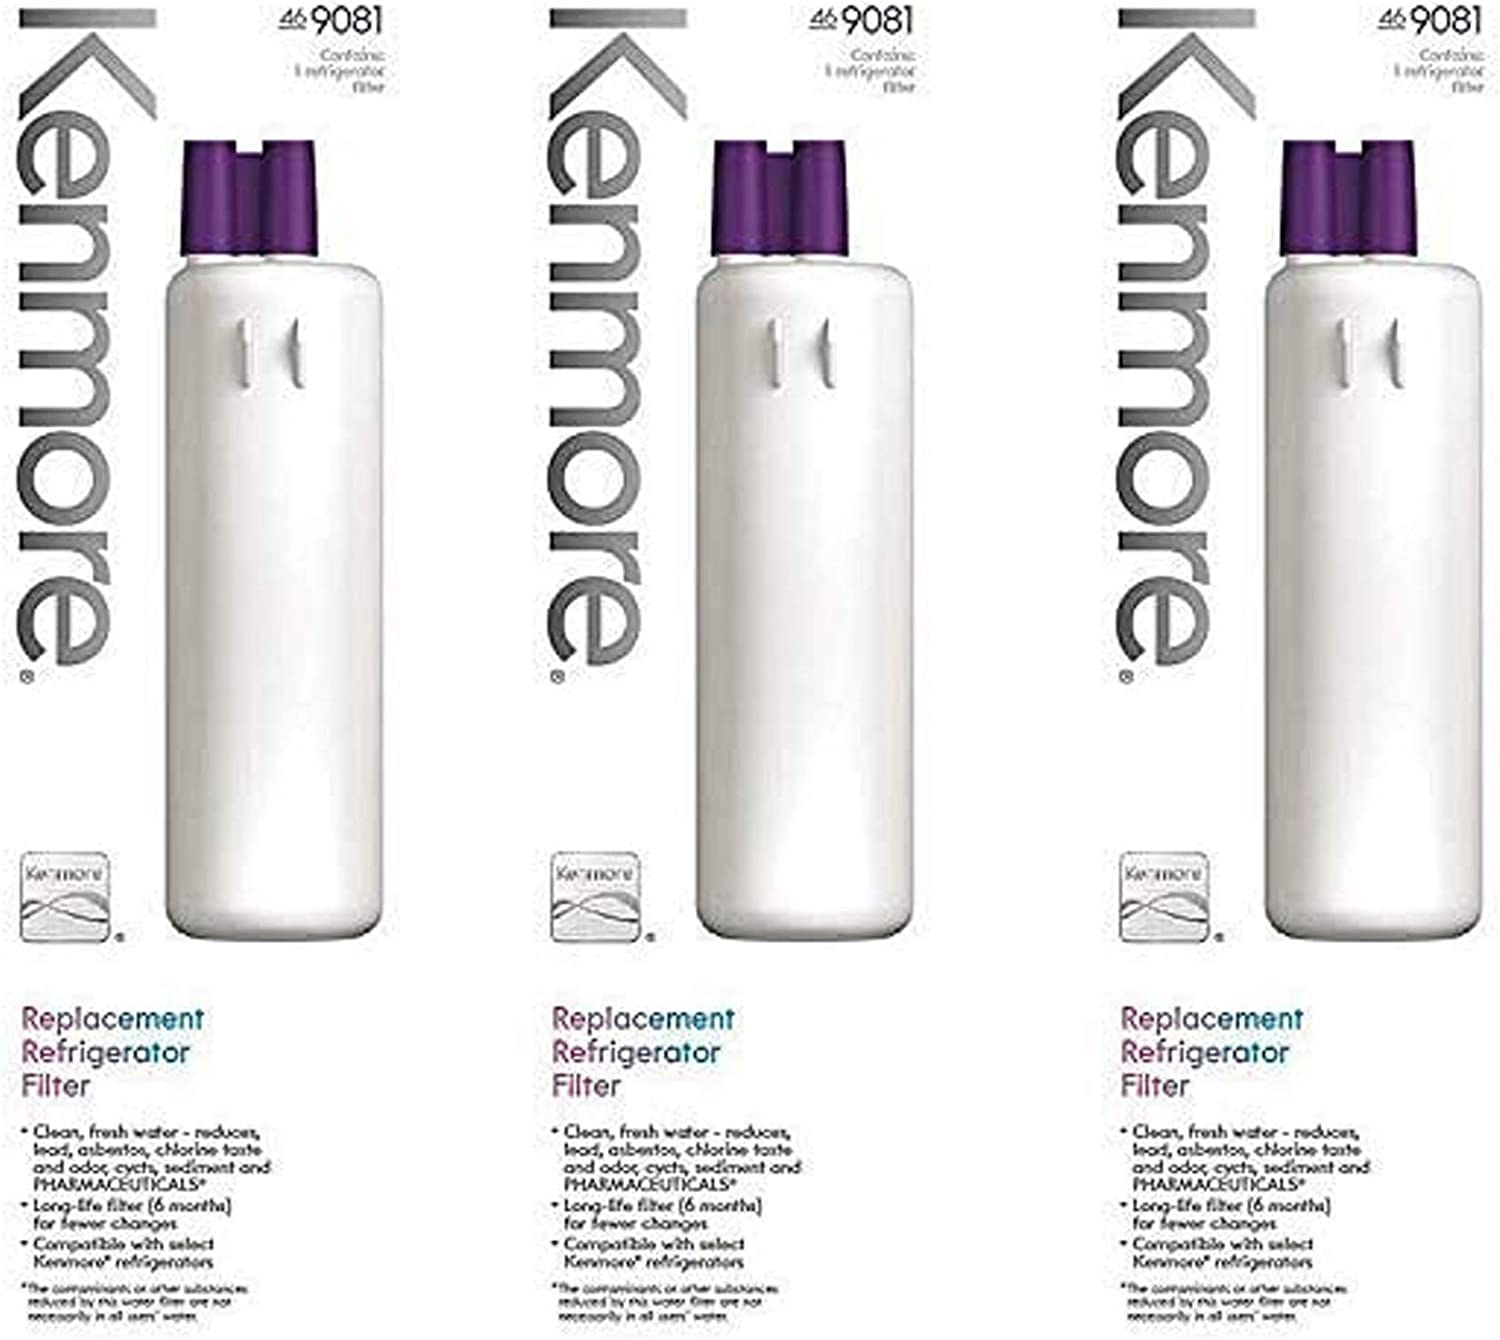 Κеnmore 469081 Replacement Refrigerator Water Filter(3-Pack)